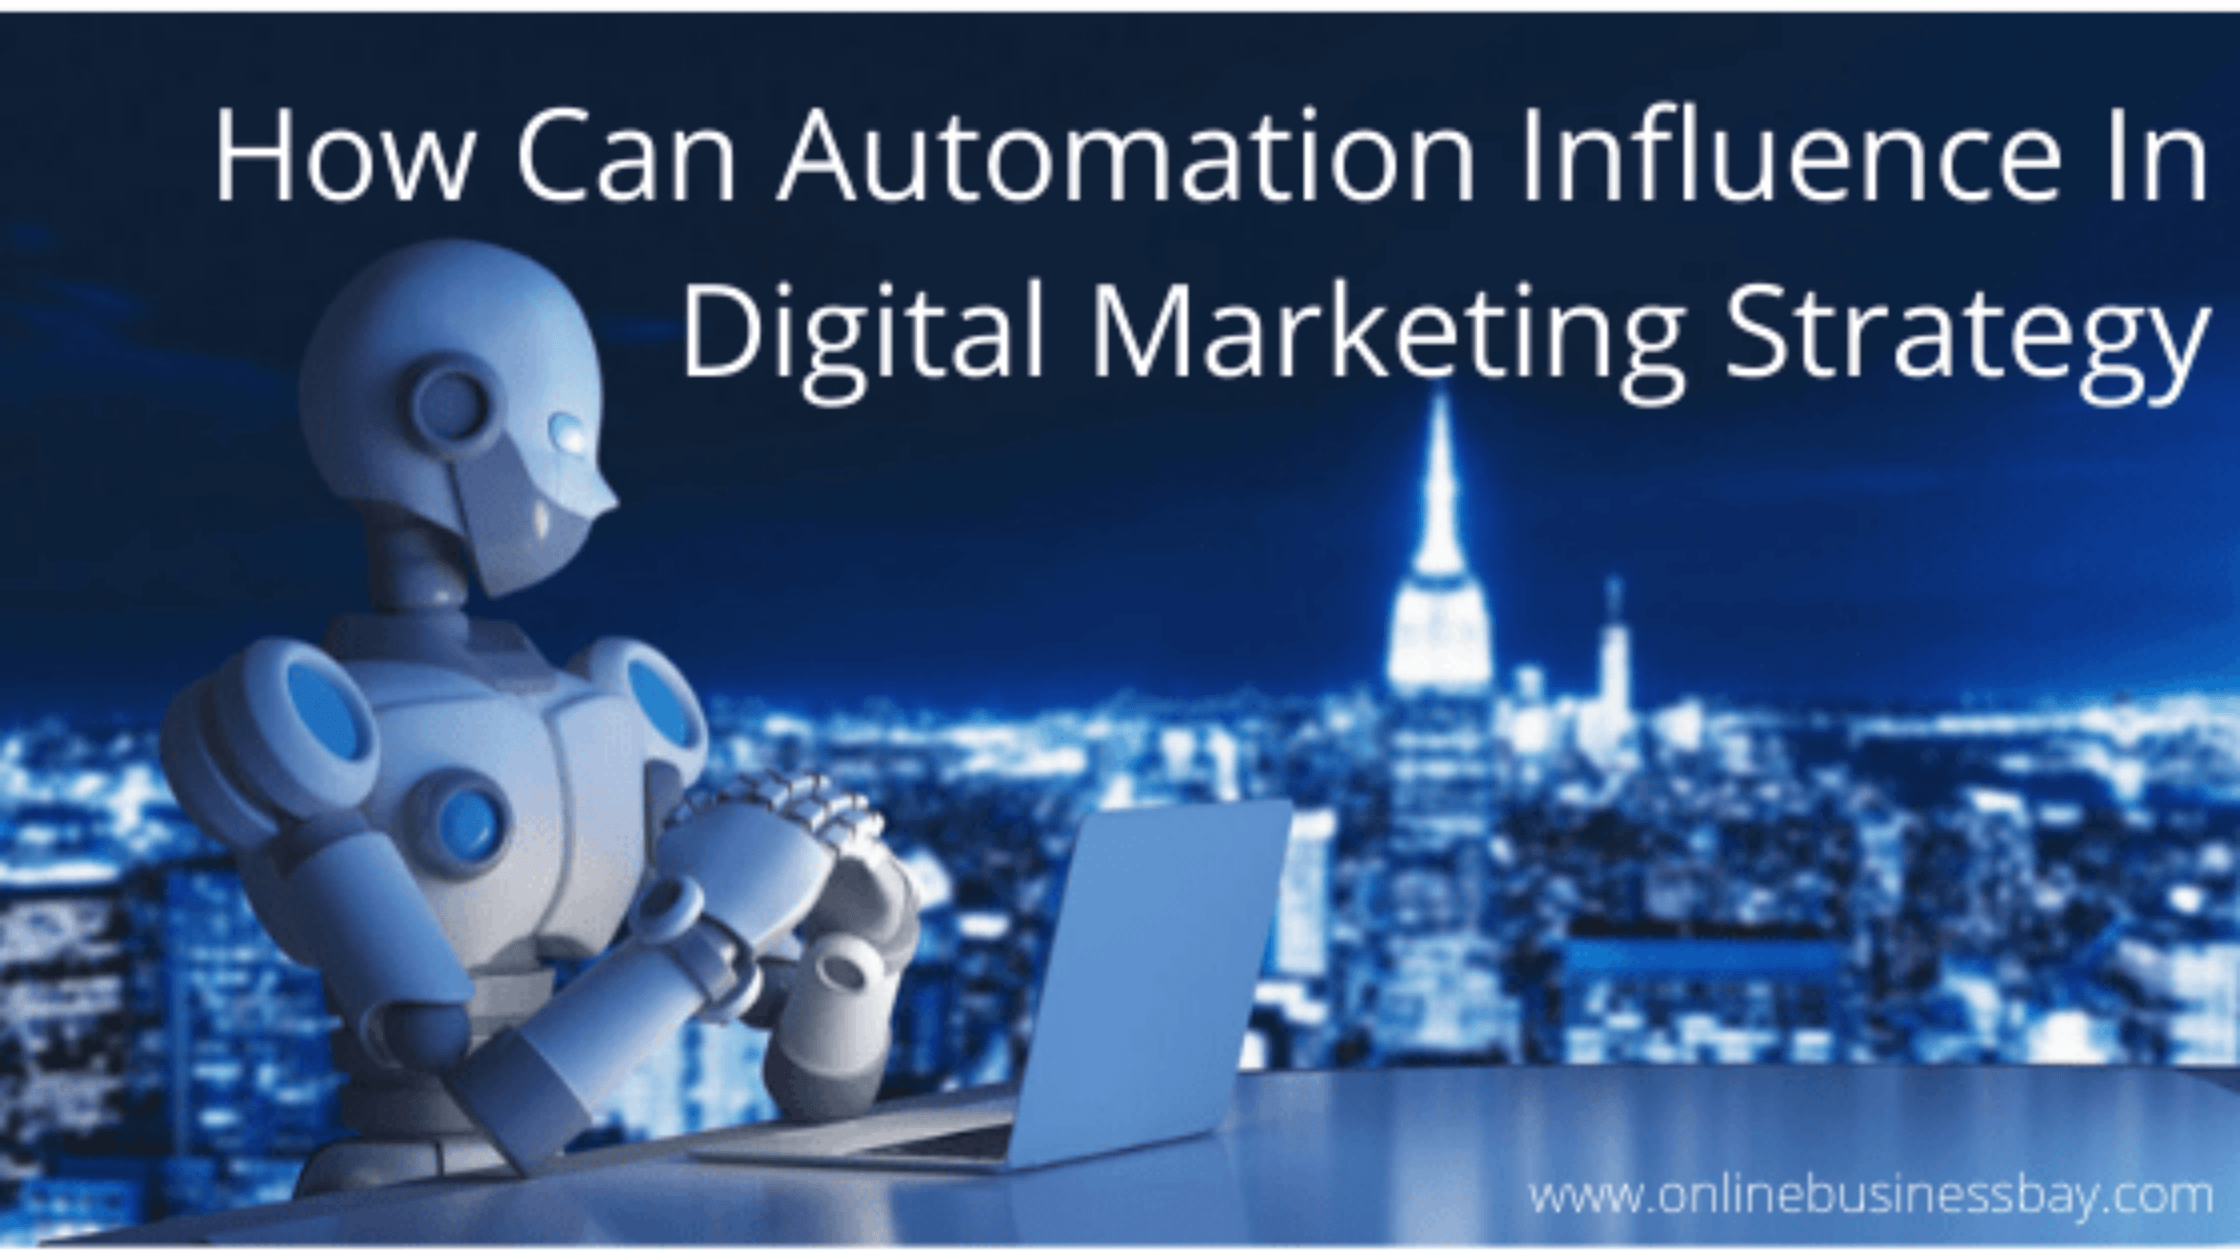 How Can Automation Influence Our Digital Marketing Strategy